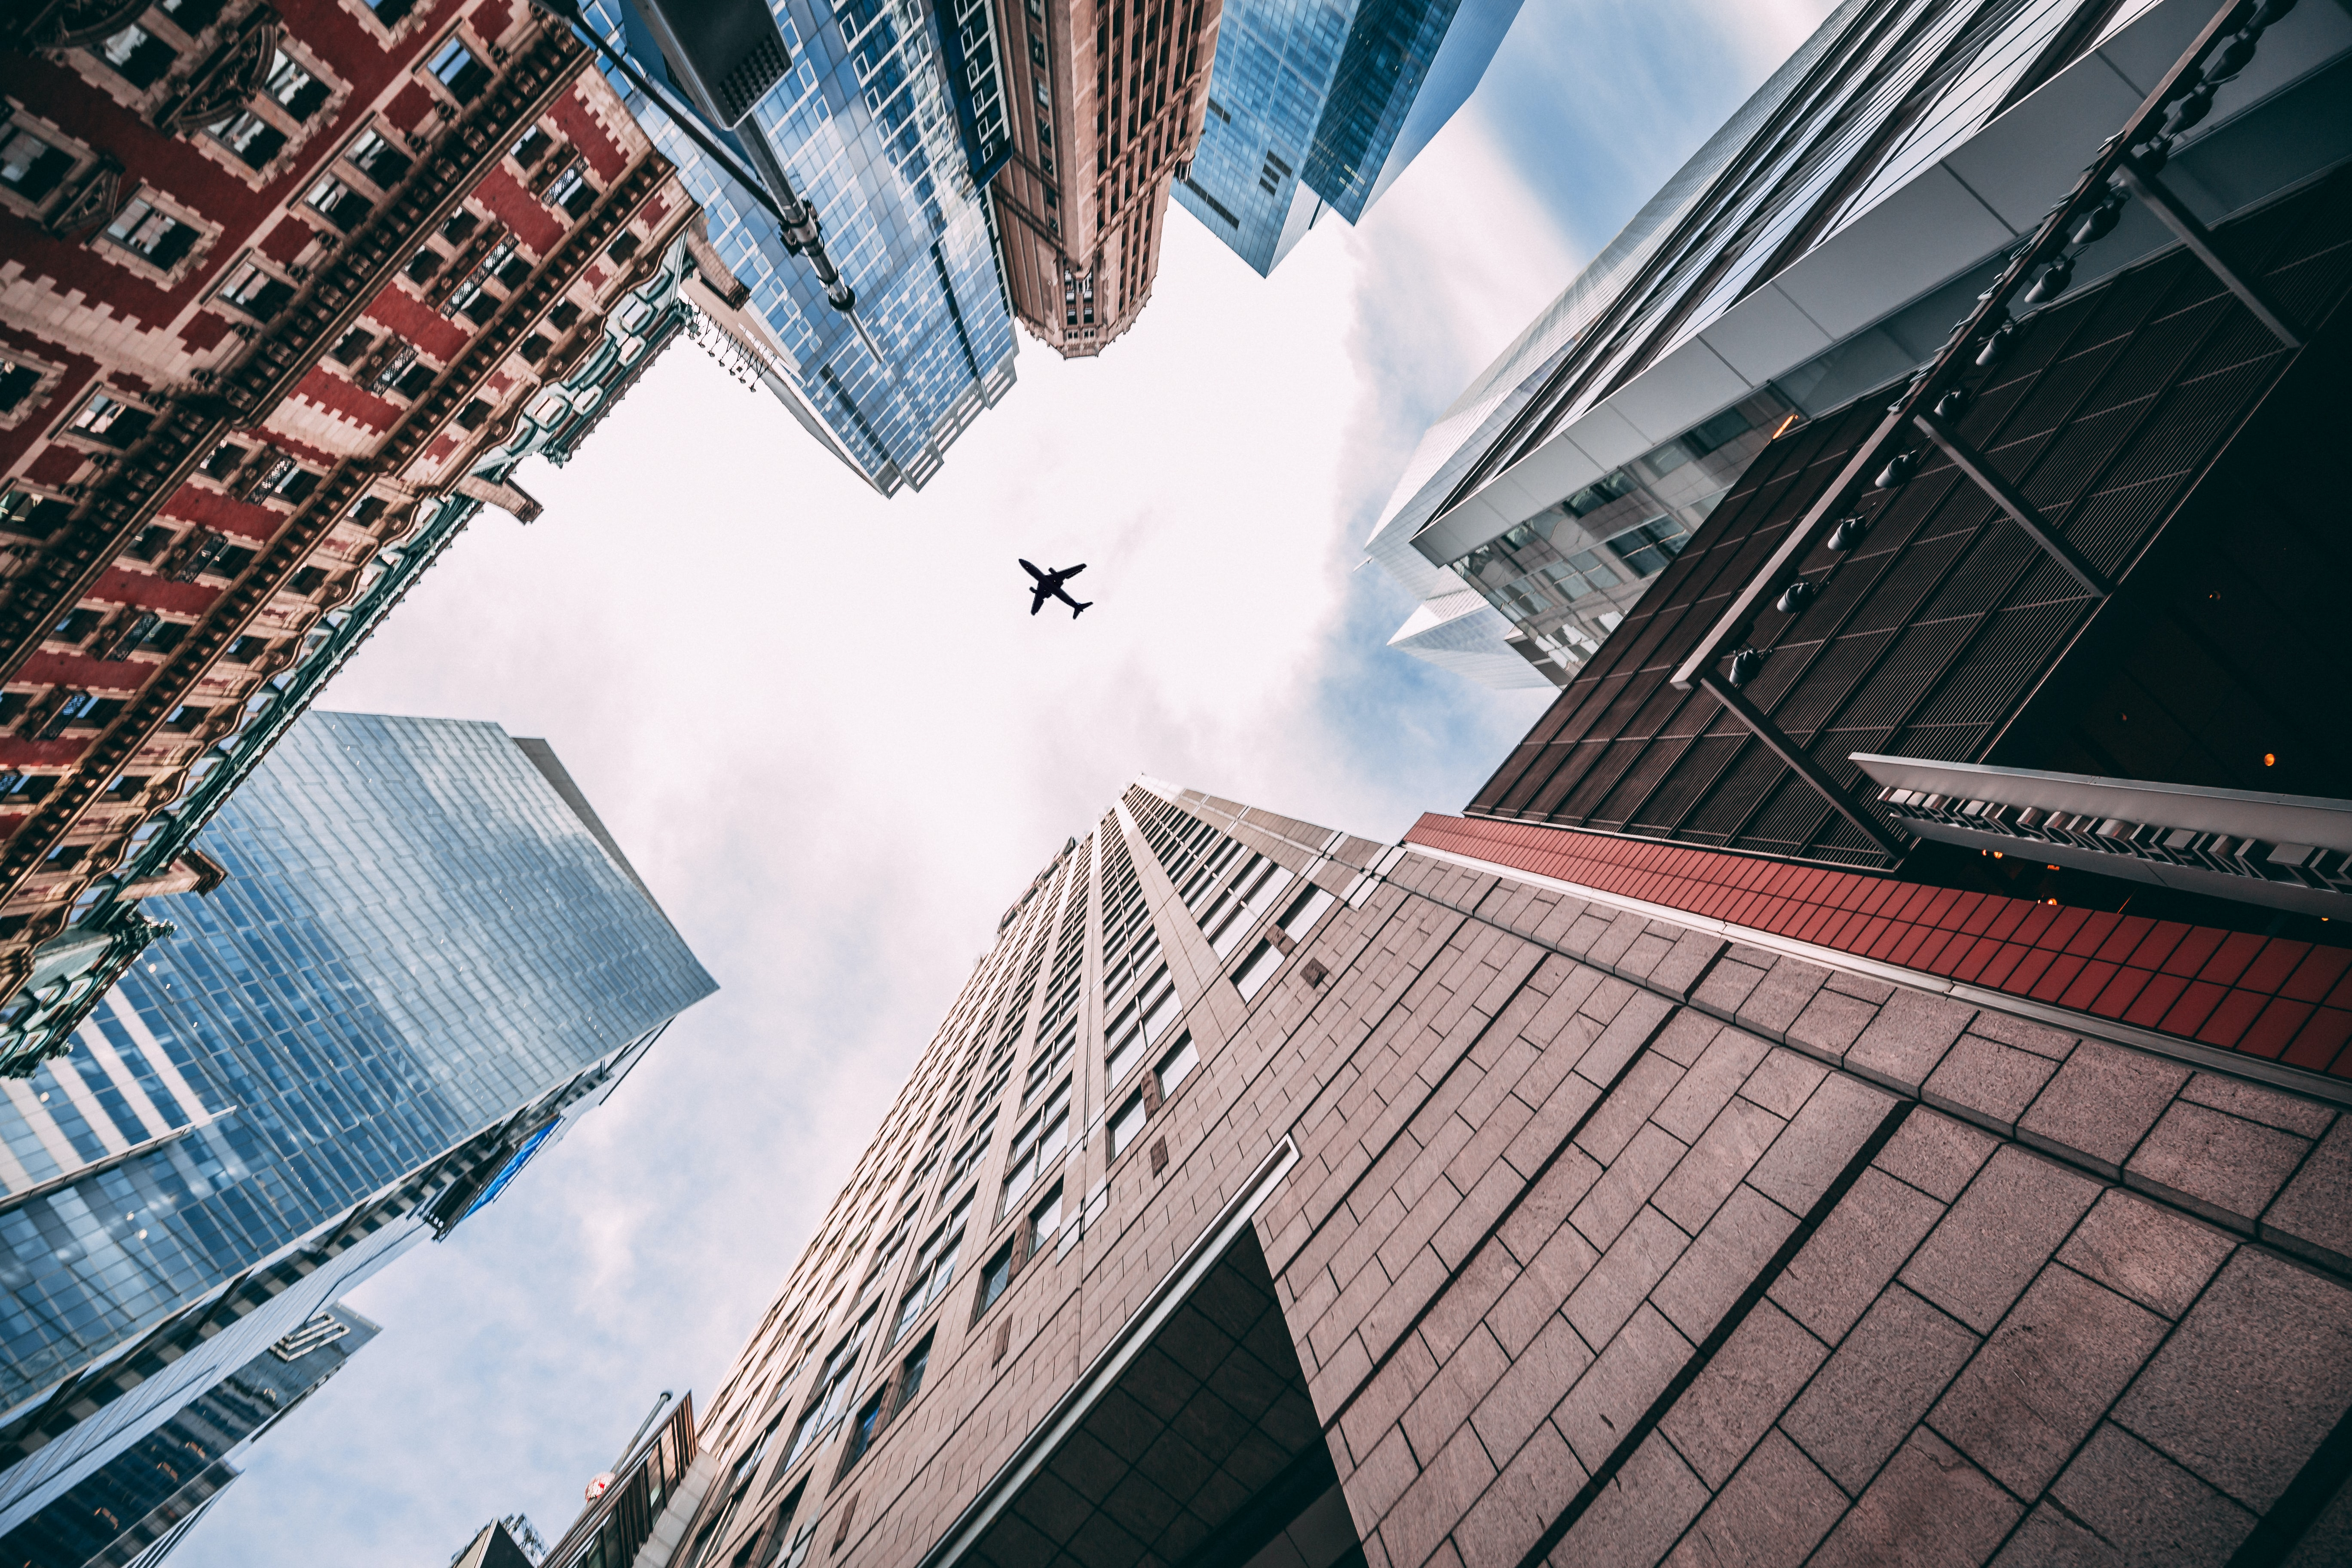 worm's-eye view of an airplane flying above city